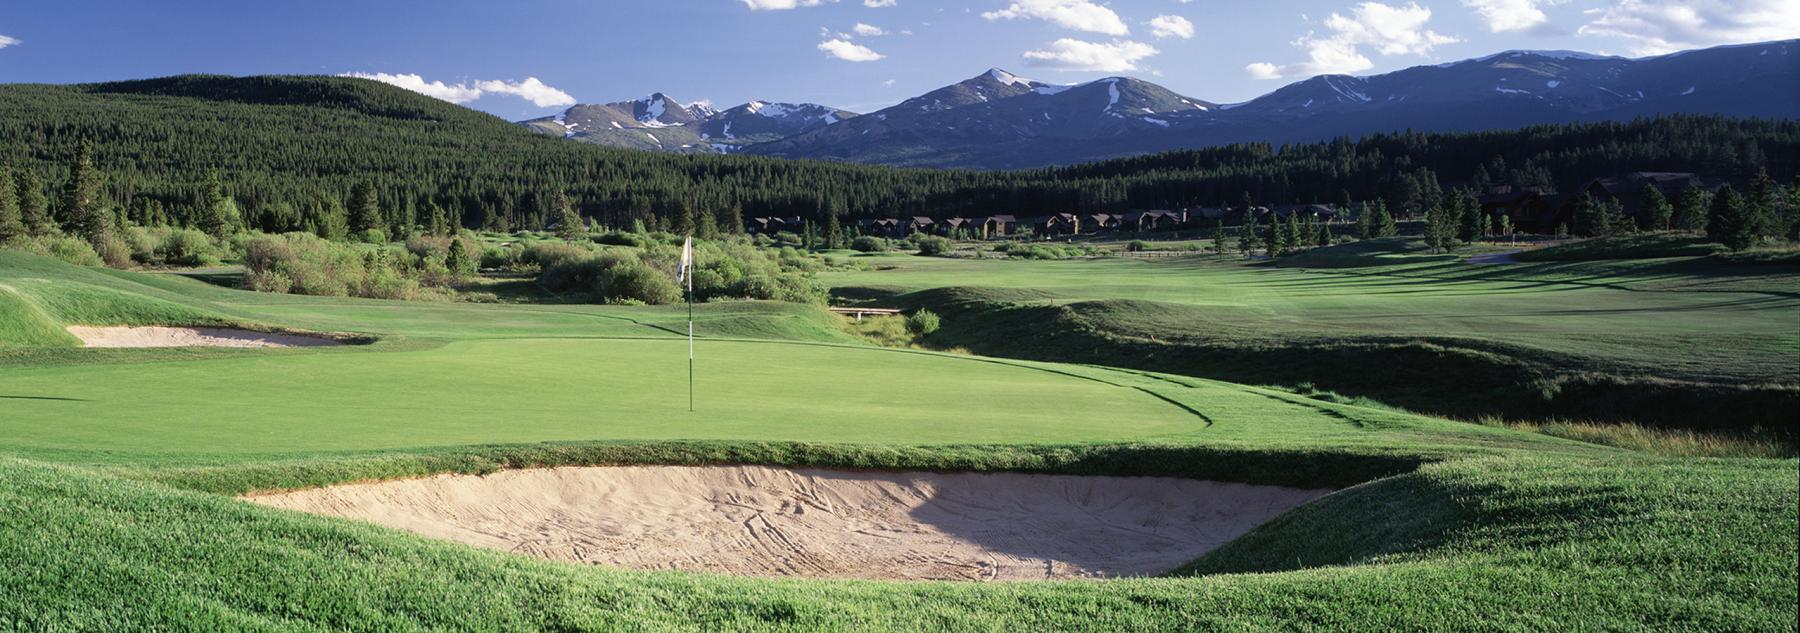 Breckenridge Golf Club